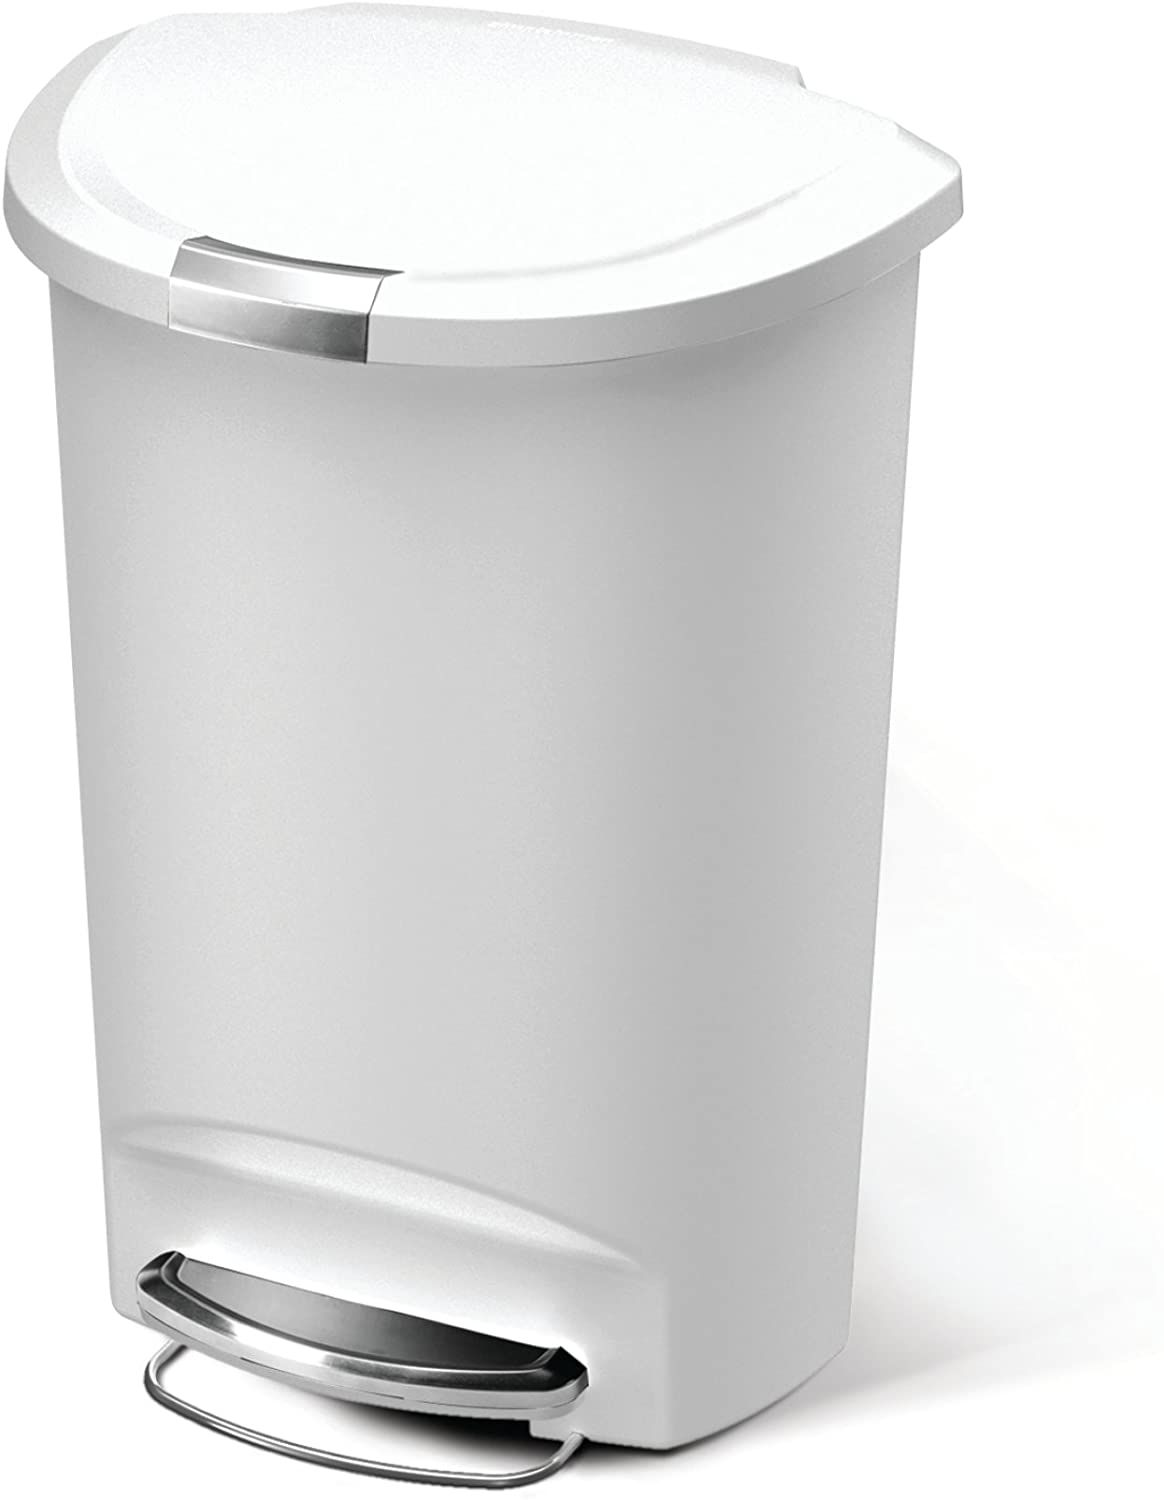 Amazon Com Simplehuman 50 Liter 13 Gallon Semi Round Kitchen Step Trash Can Grey Plastic With Secure Slide Lock Home Simplehuman Trash Can Round Kitchen Simple human trash can 13 gallon